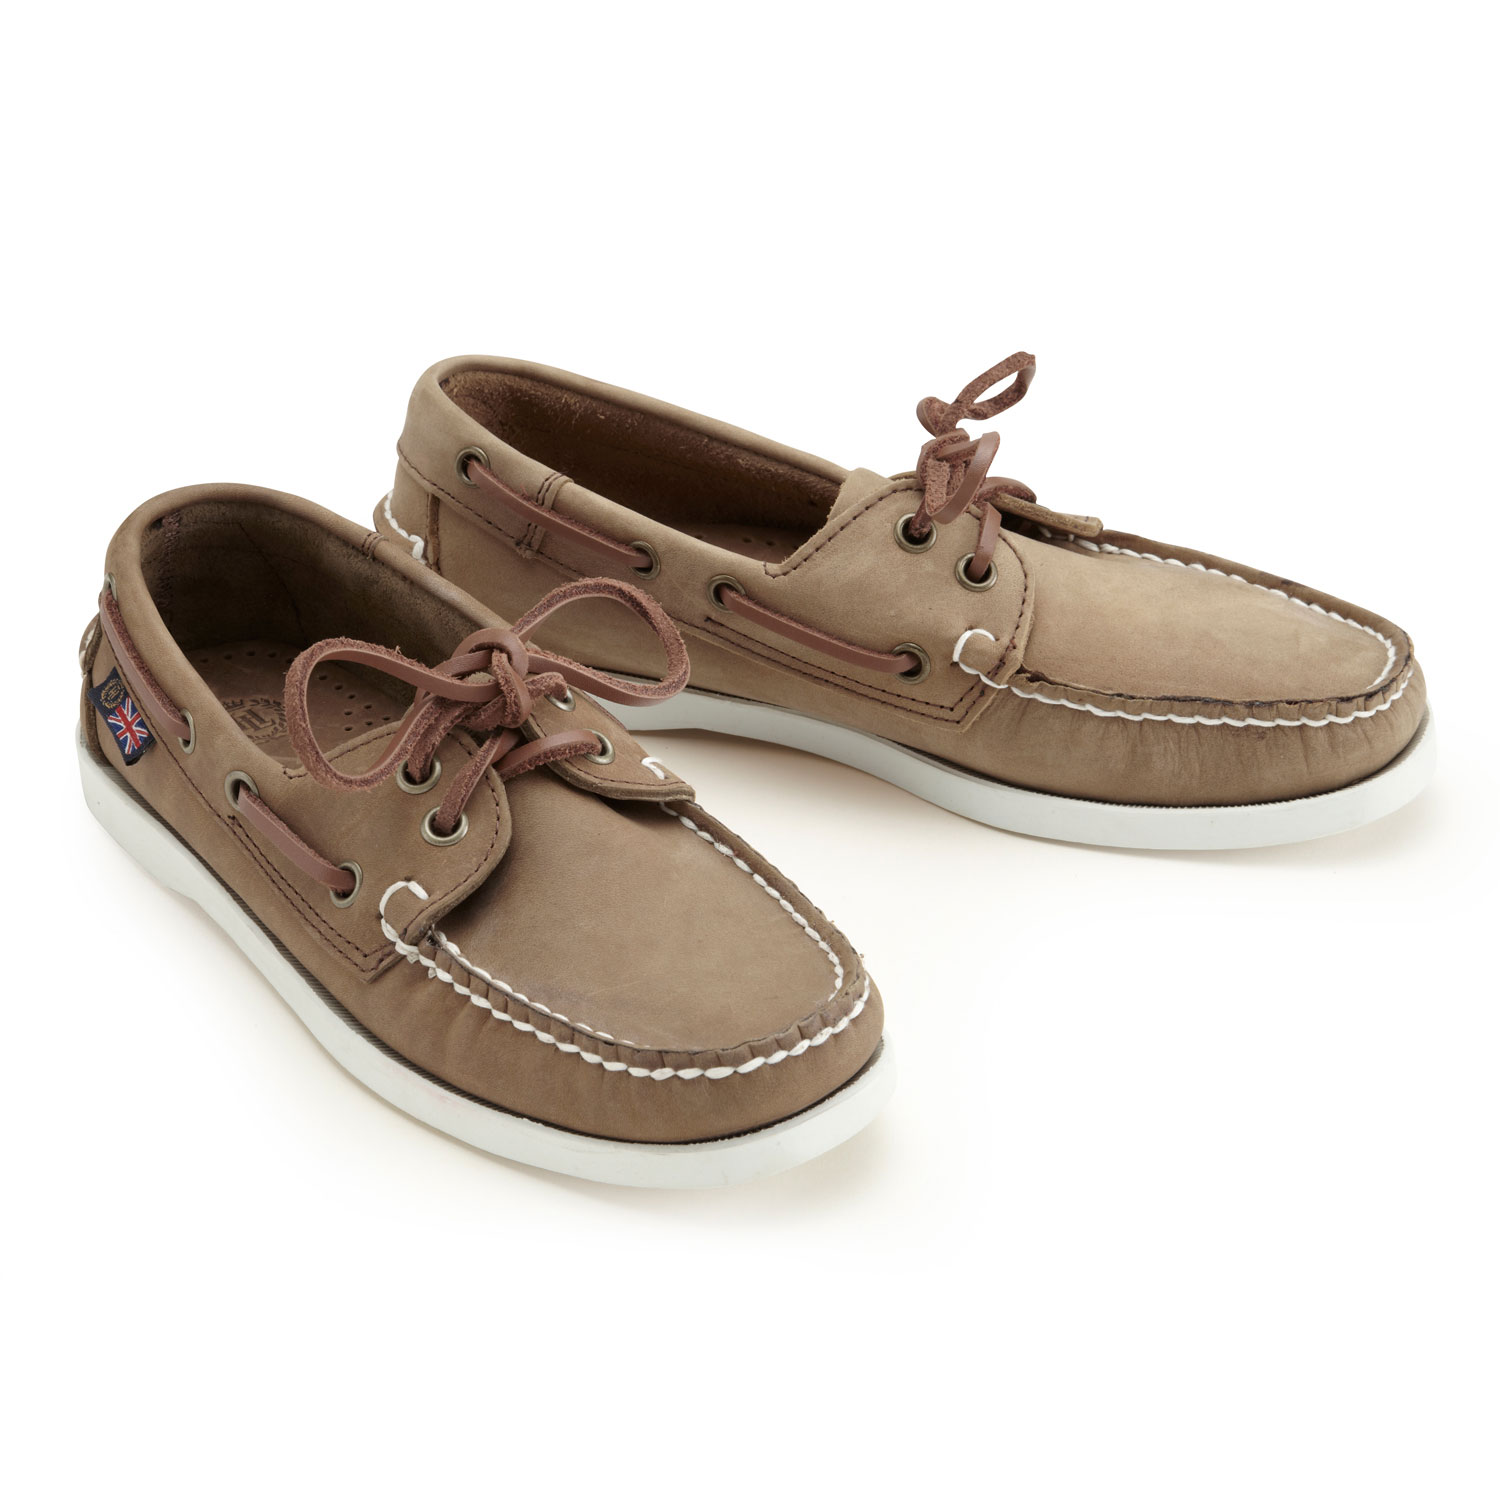 Henri Lloyd Deck Shoes Latest Collection For Men Fashion Fist 3